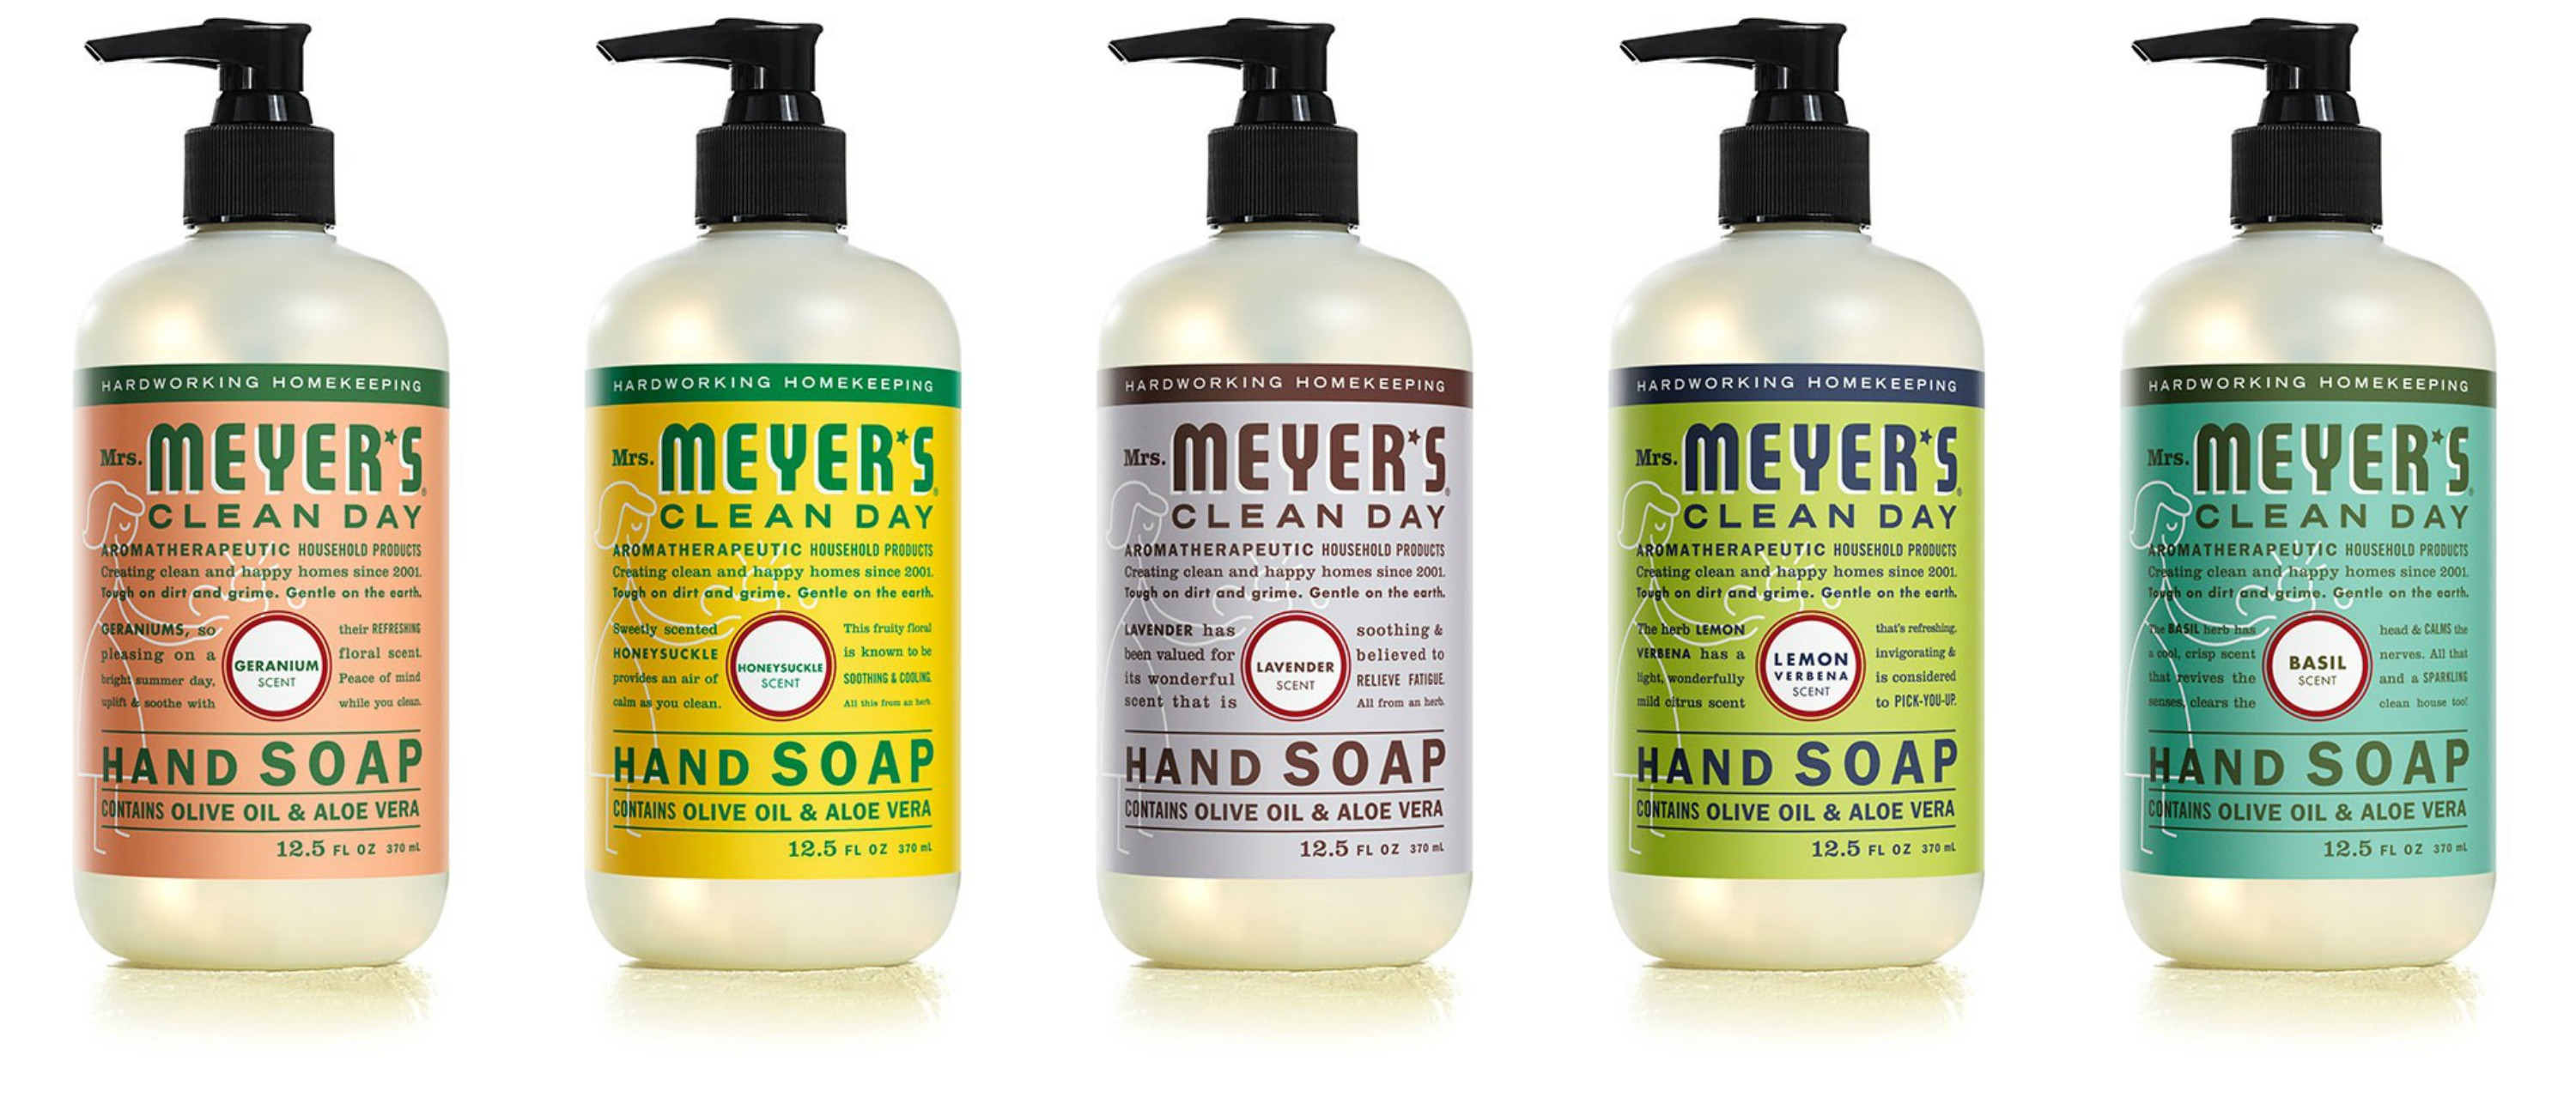 FREE Mrs Meyers Organizing Cleaning Caddy Set - DETAILS at www.foxhollowcottage.com